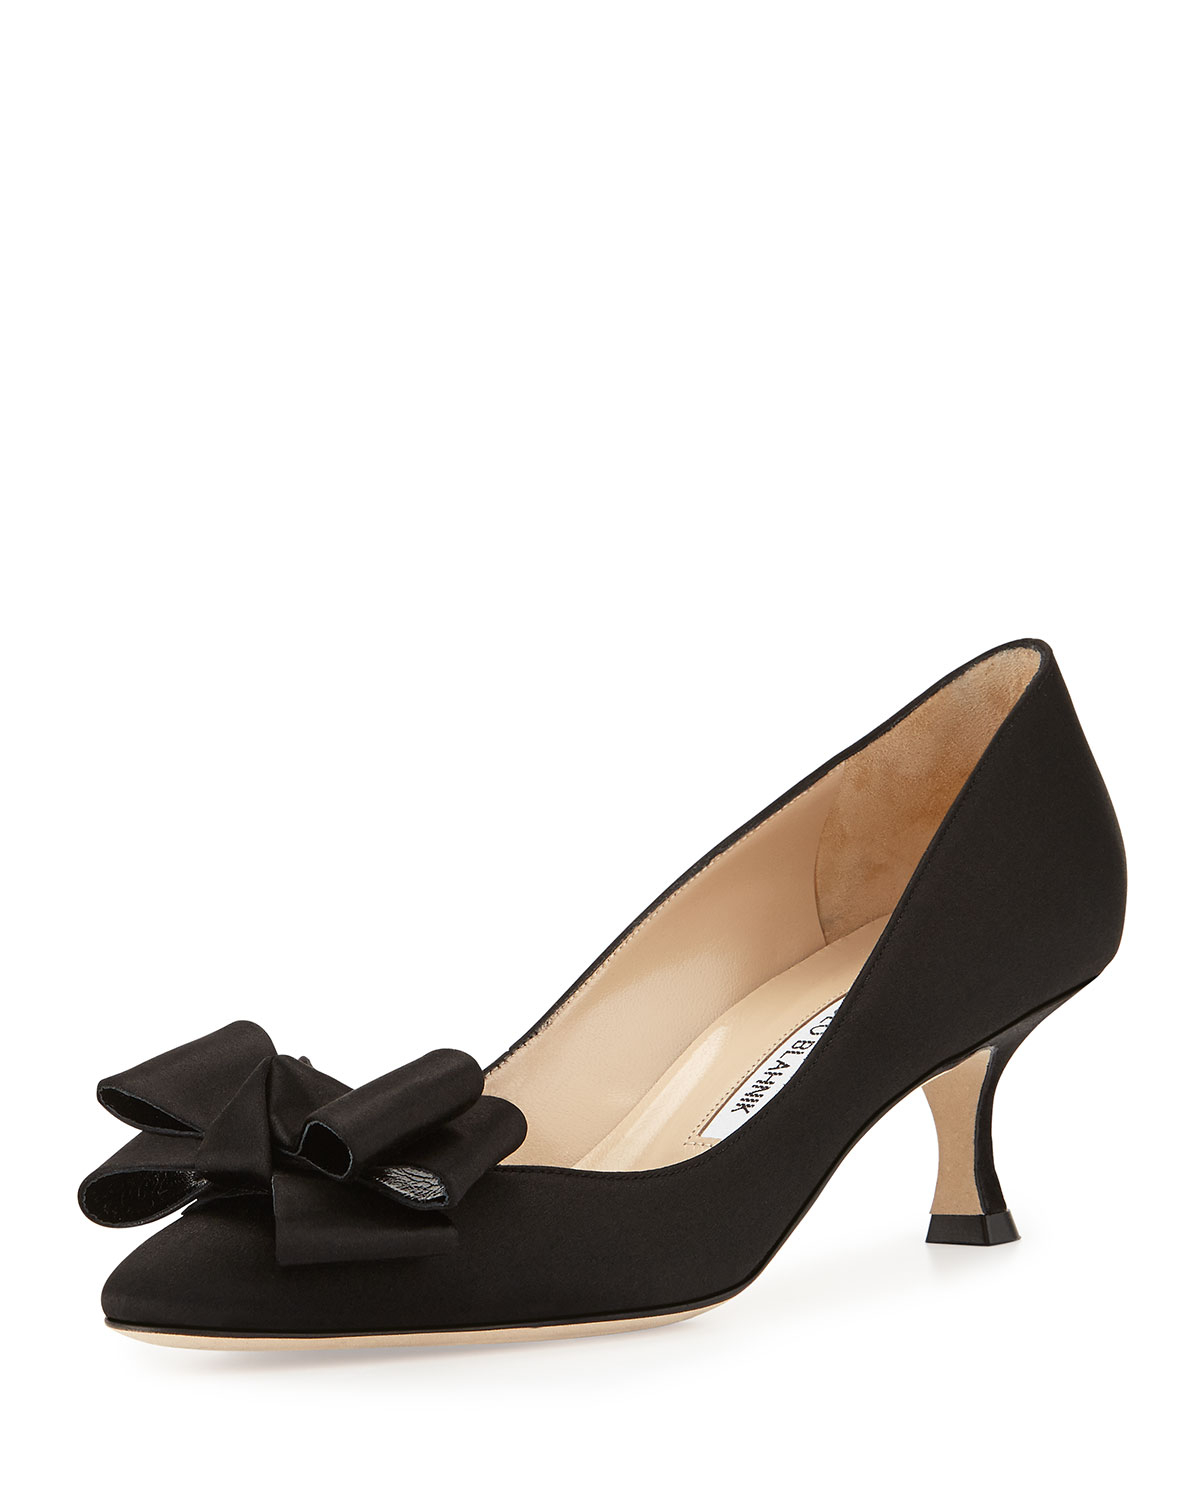 Black Satin Kitten Heel Shoes